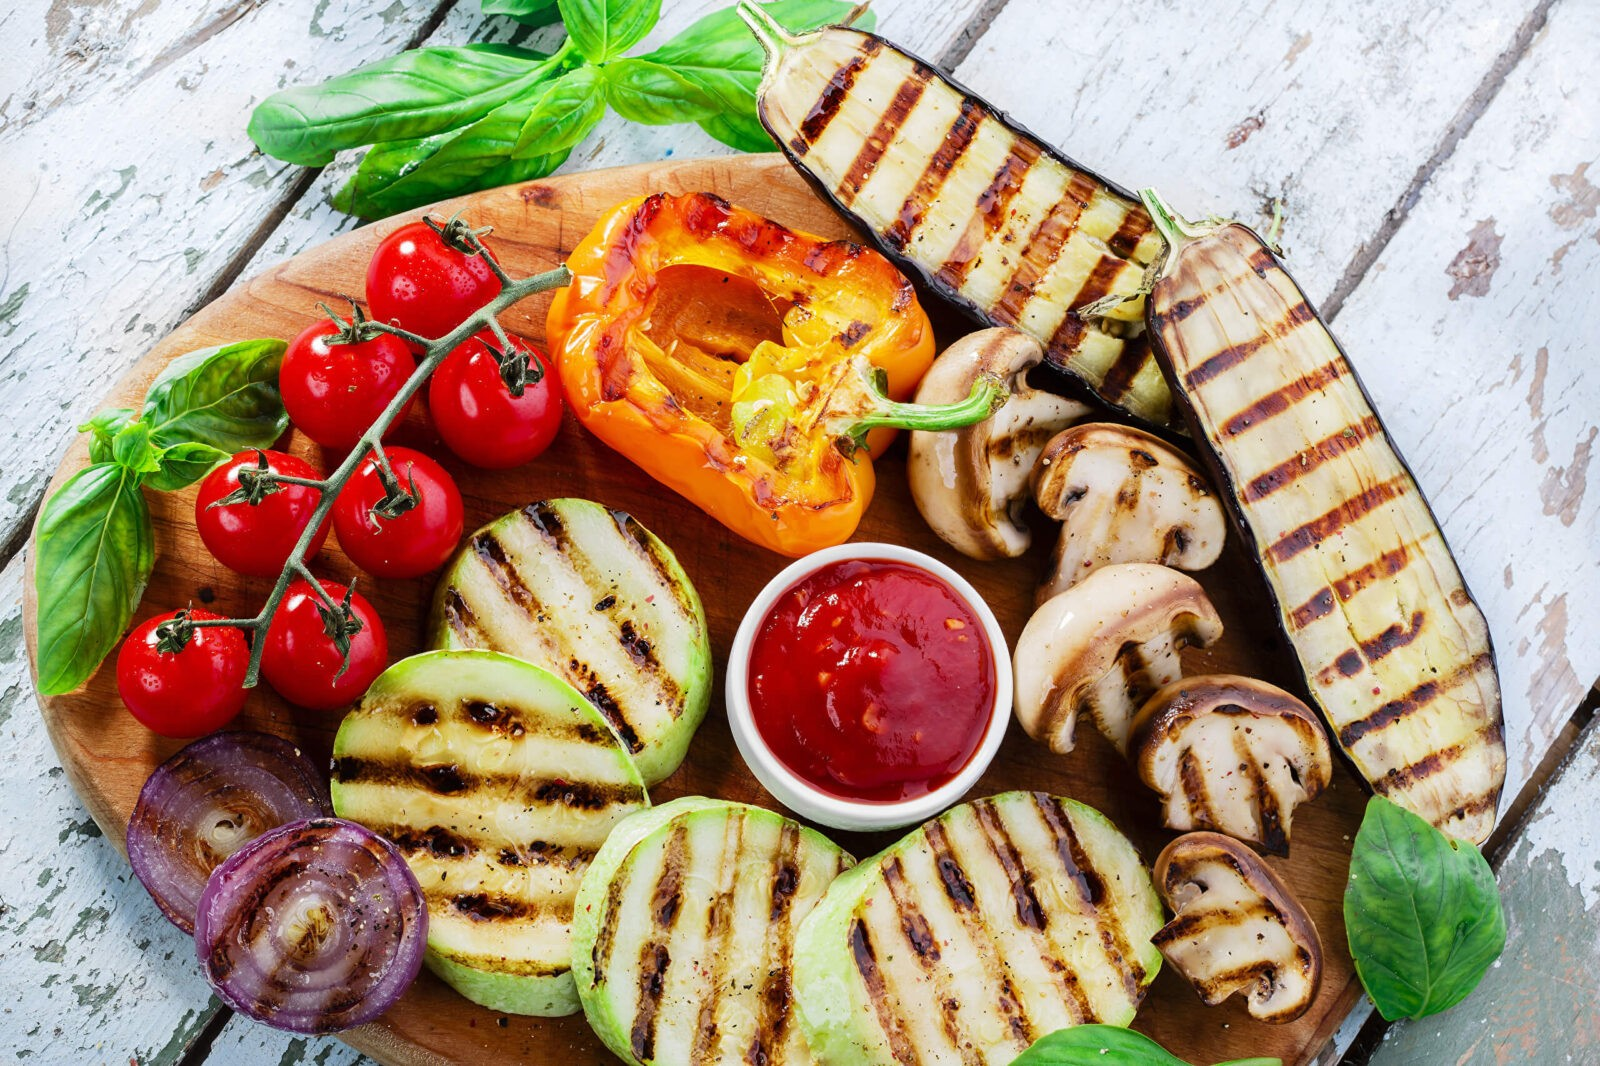 How to cook grilled vegetables 2